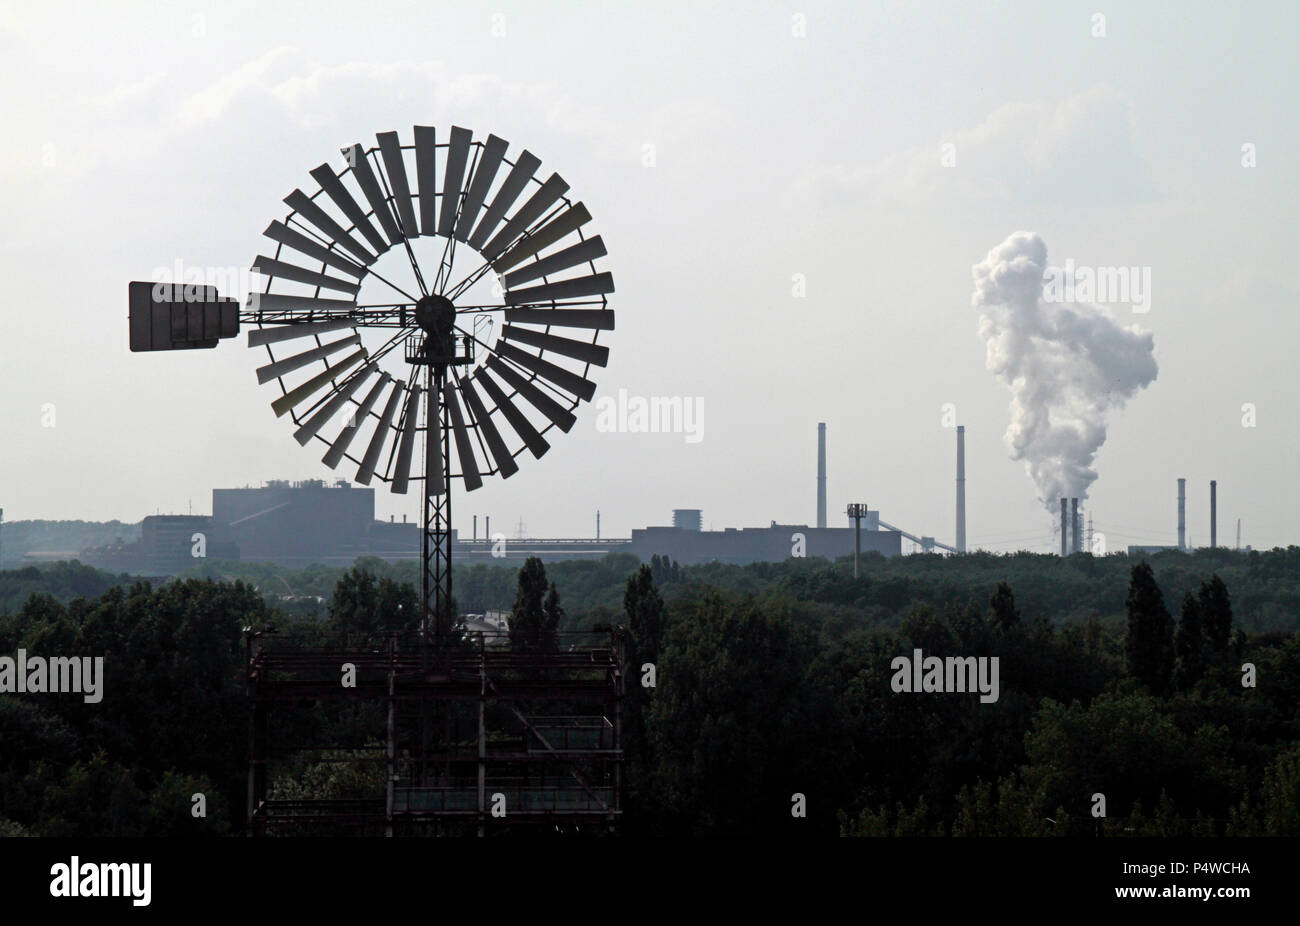 Windmill with factory in the background - Stock Image